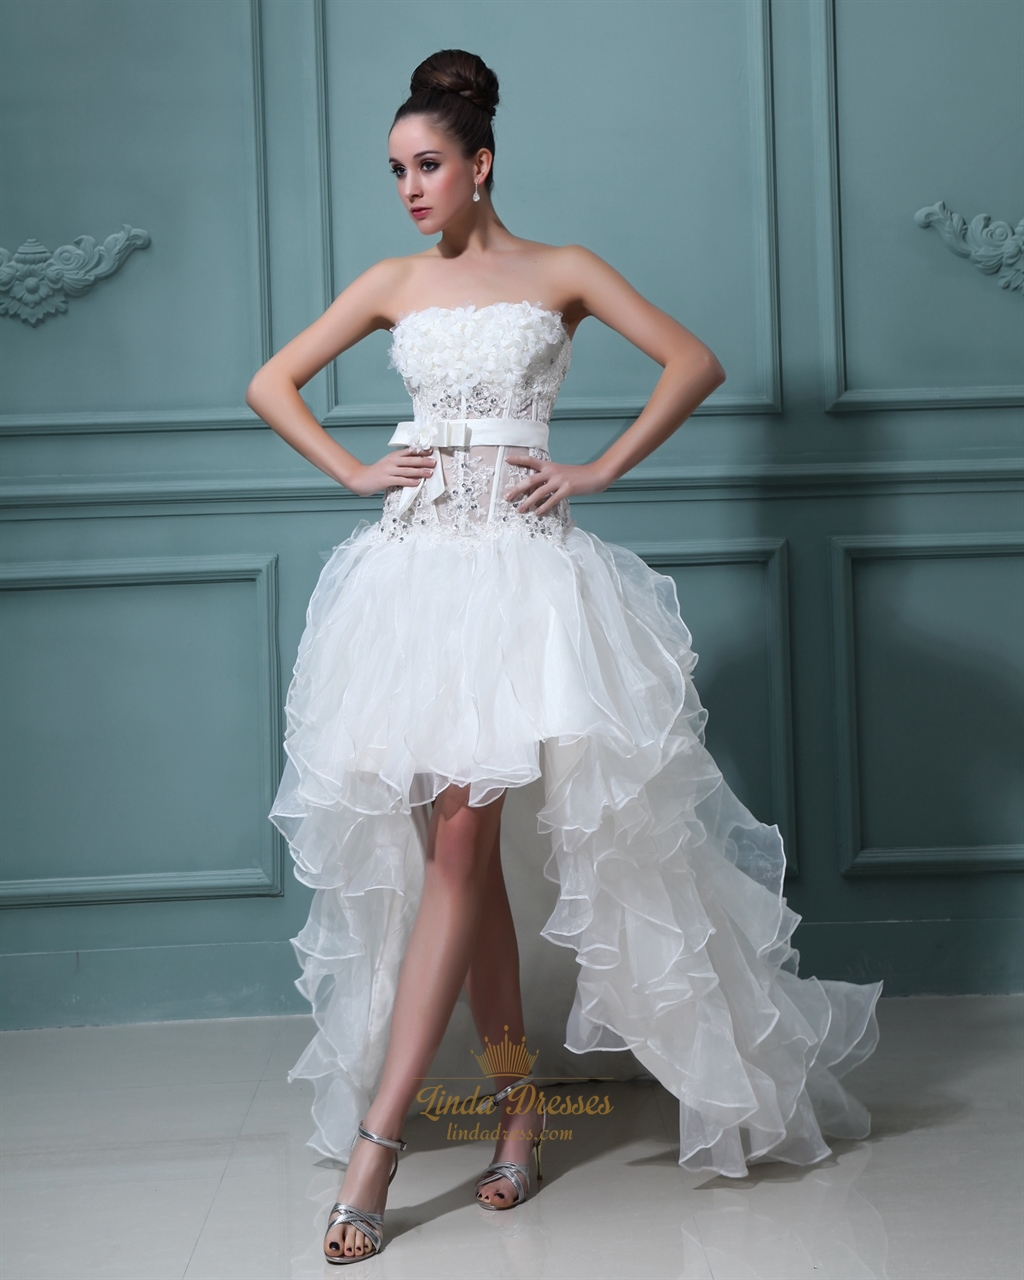 Wedding Dress Short In Front With Long Train | Linda Dress